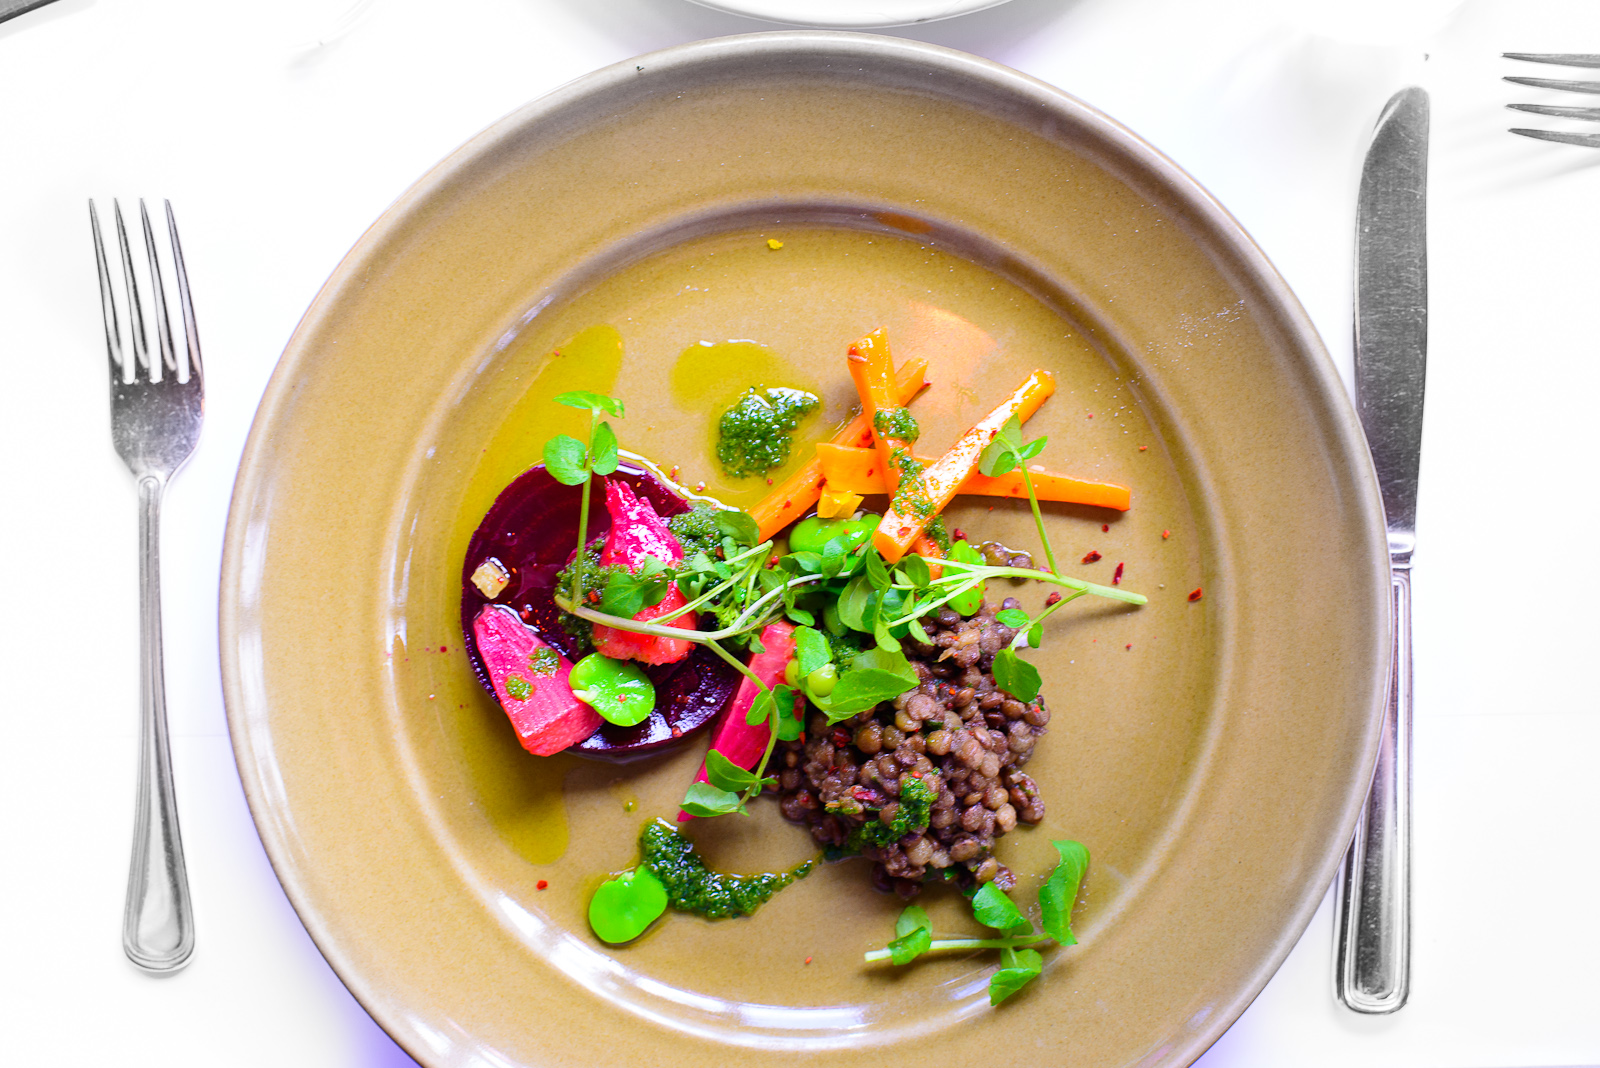 Lentils with preserved lemon, spicy carrots, and marinated beets